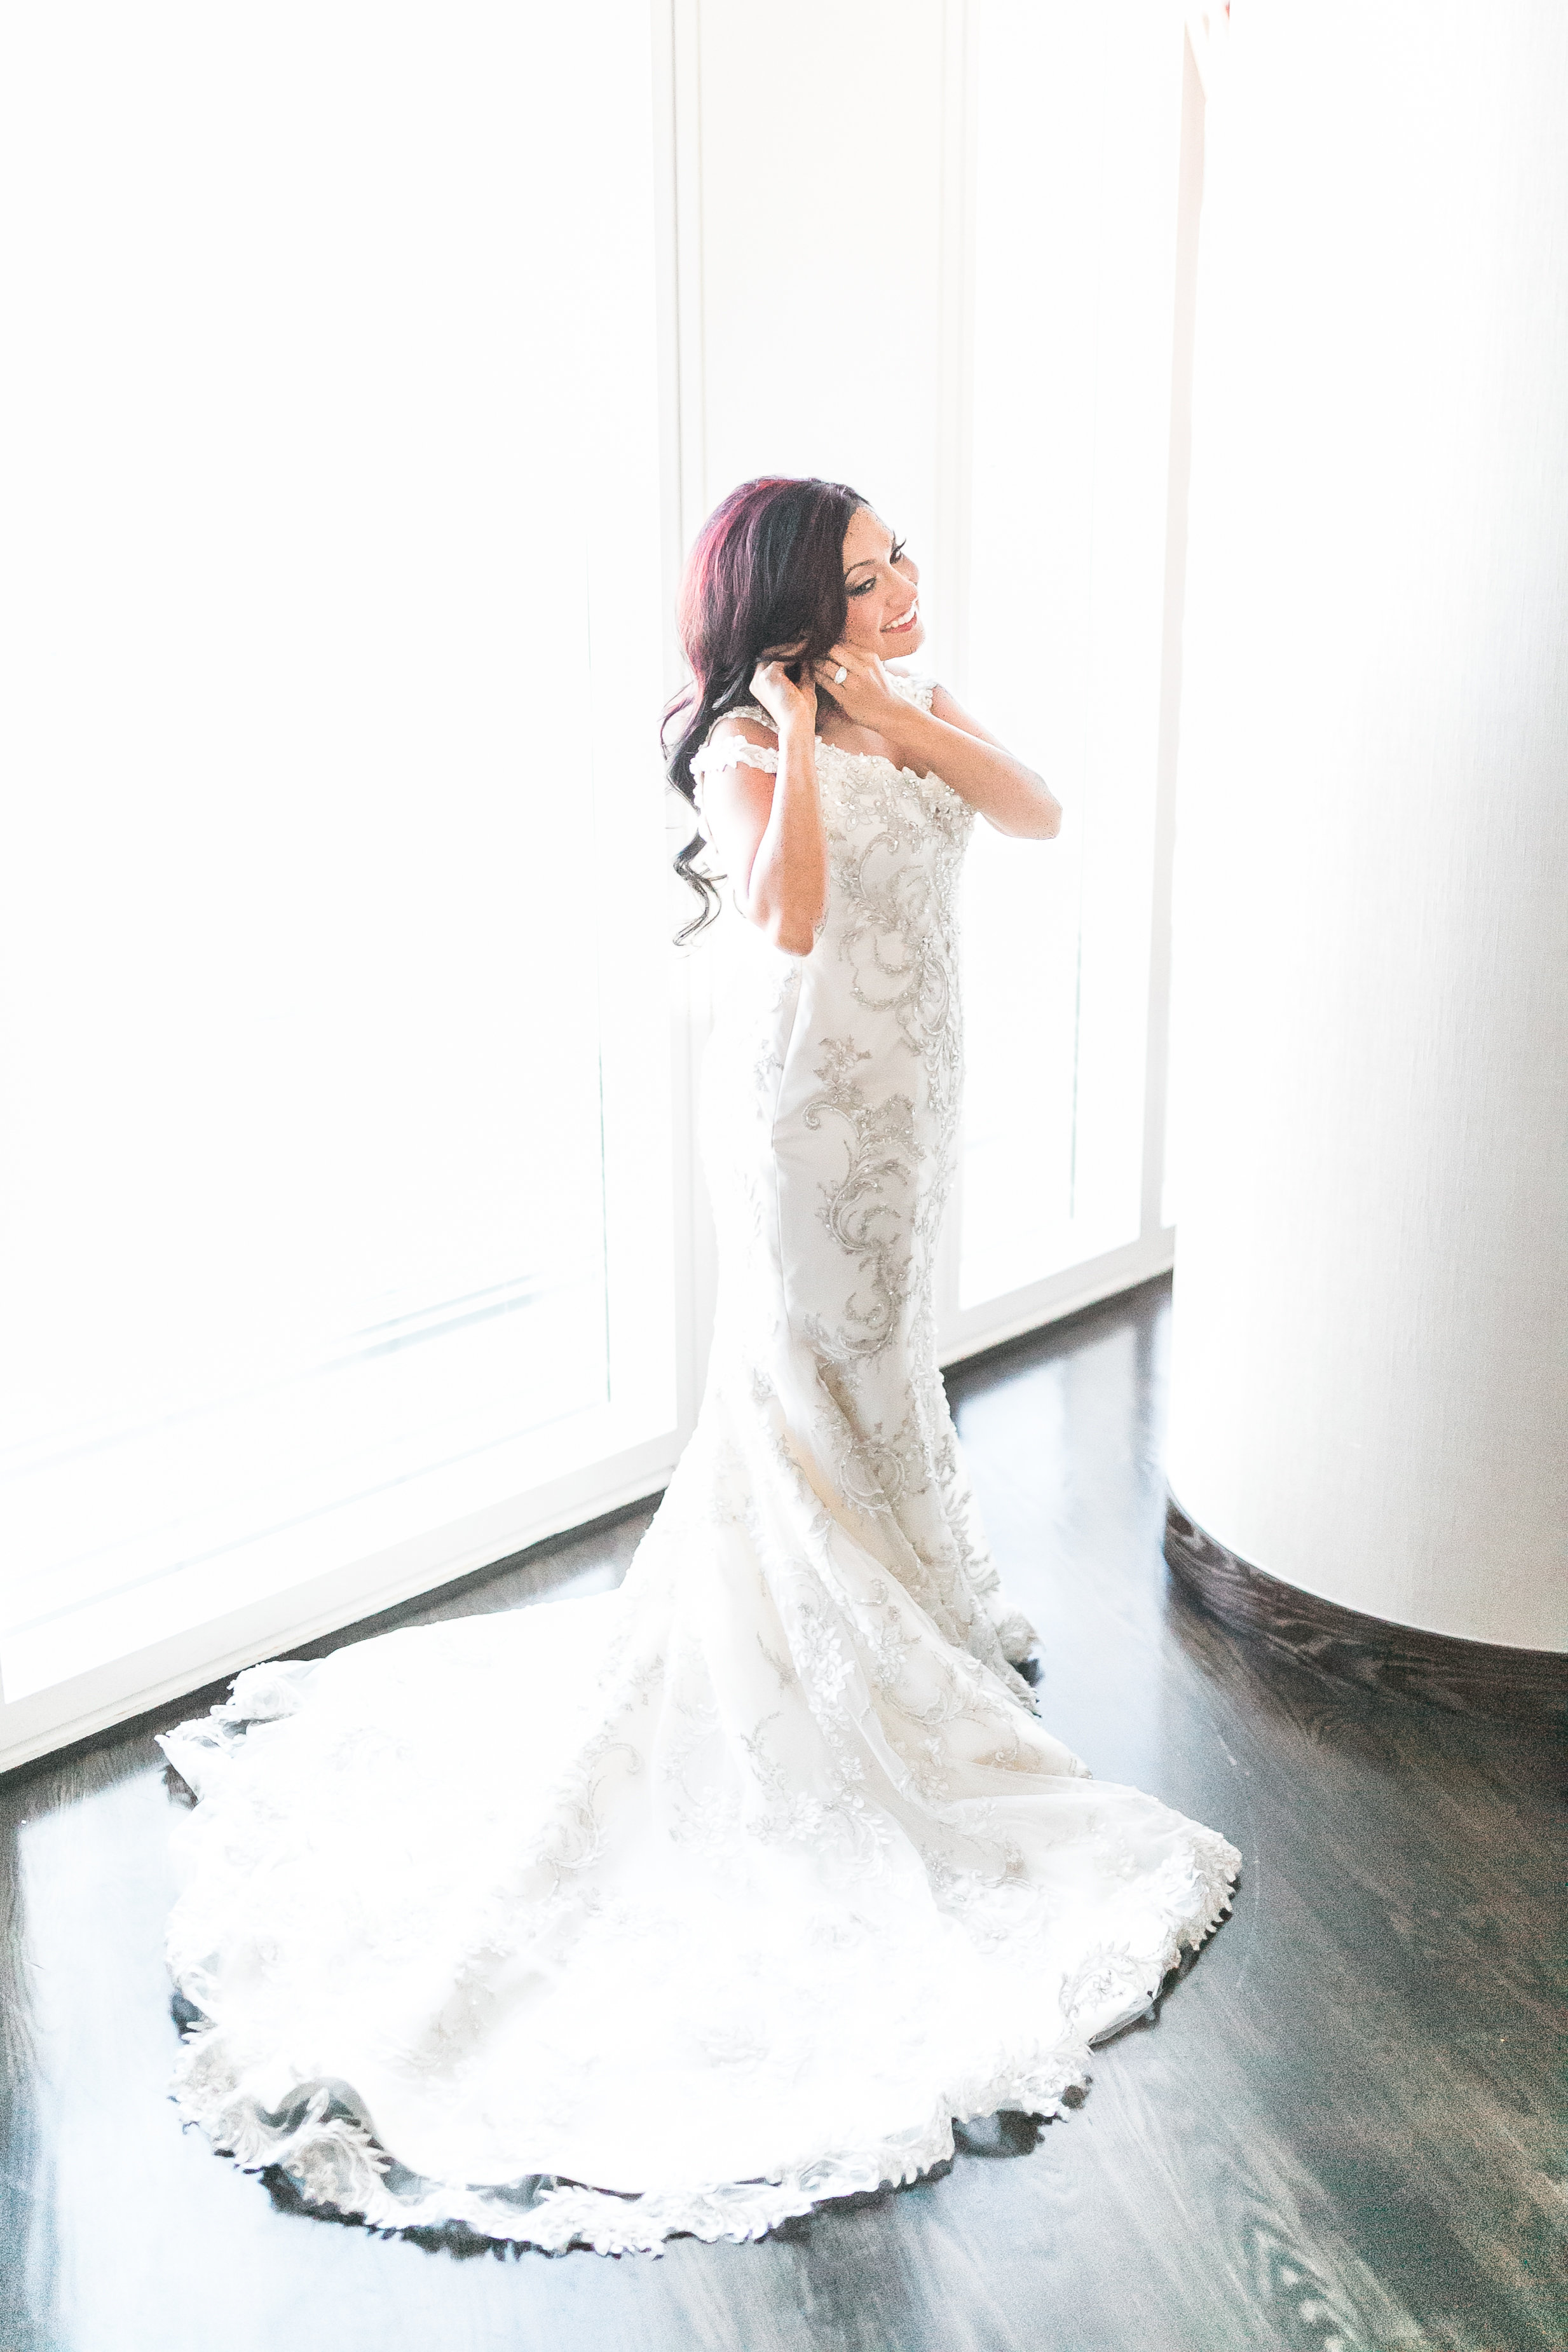 The bride wore a lace, off the shoulder wedding gown from Maggie Sottero.  Las Vegas Wedding Planner Andrea Eppolito shares this multicultural wedding.  Photo by J.Anne Photography.